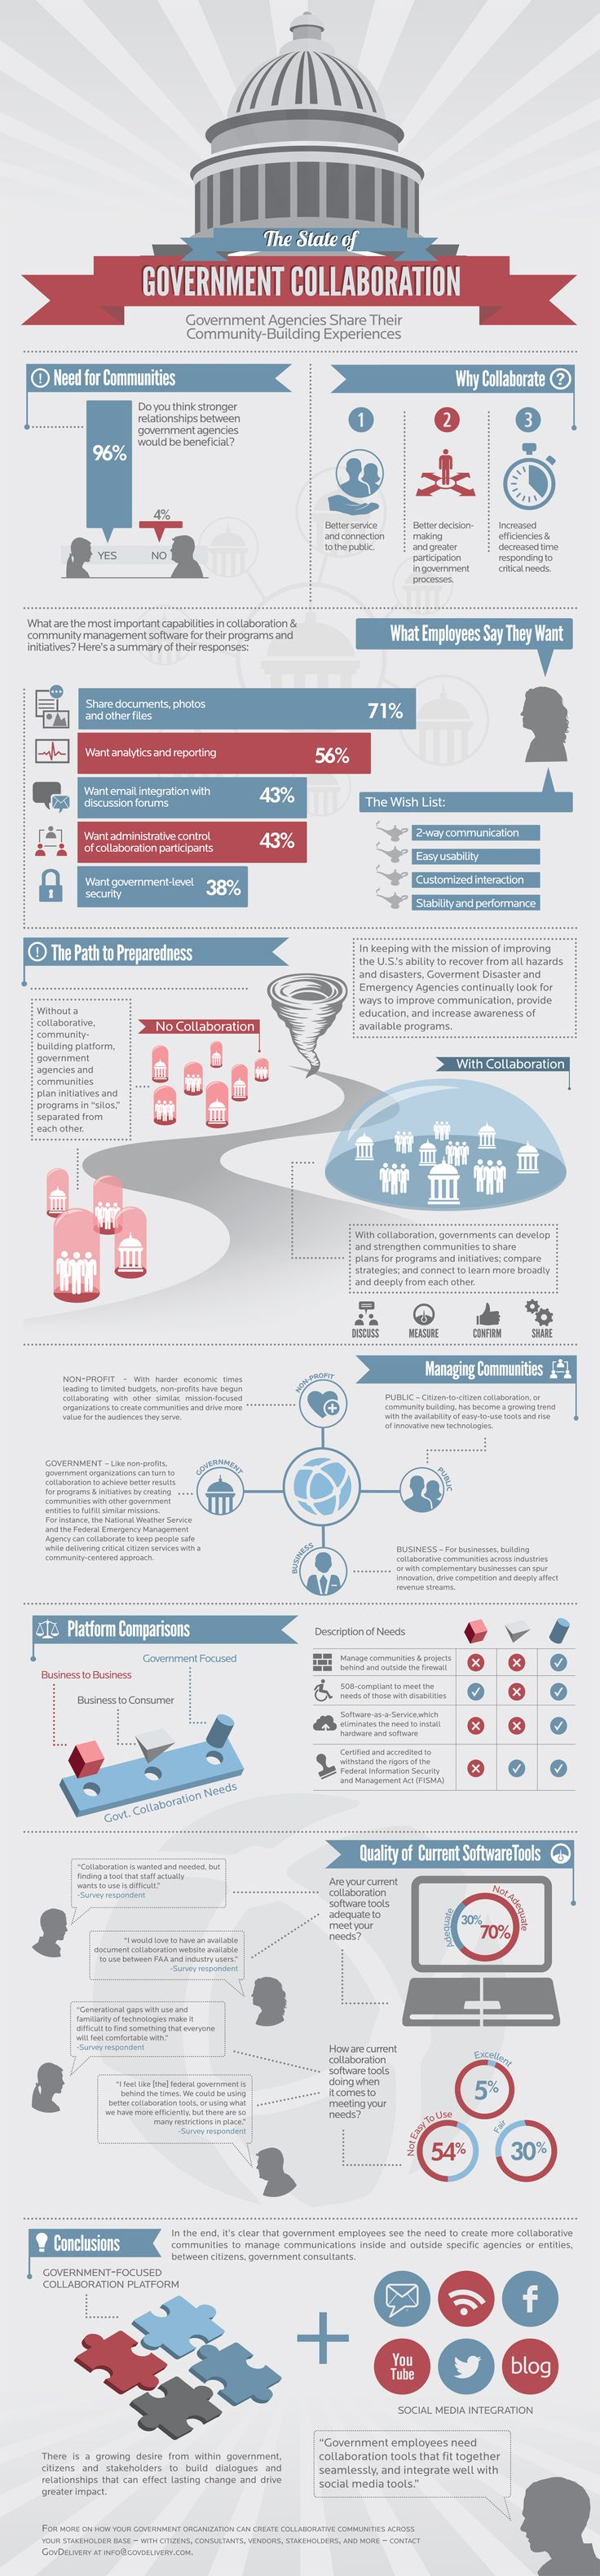 Infographic: Employees Want Better Collaboration #gov20 #digitalgov #cio